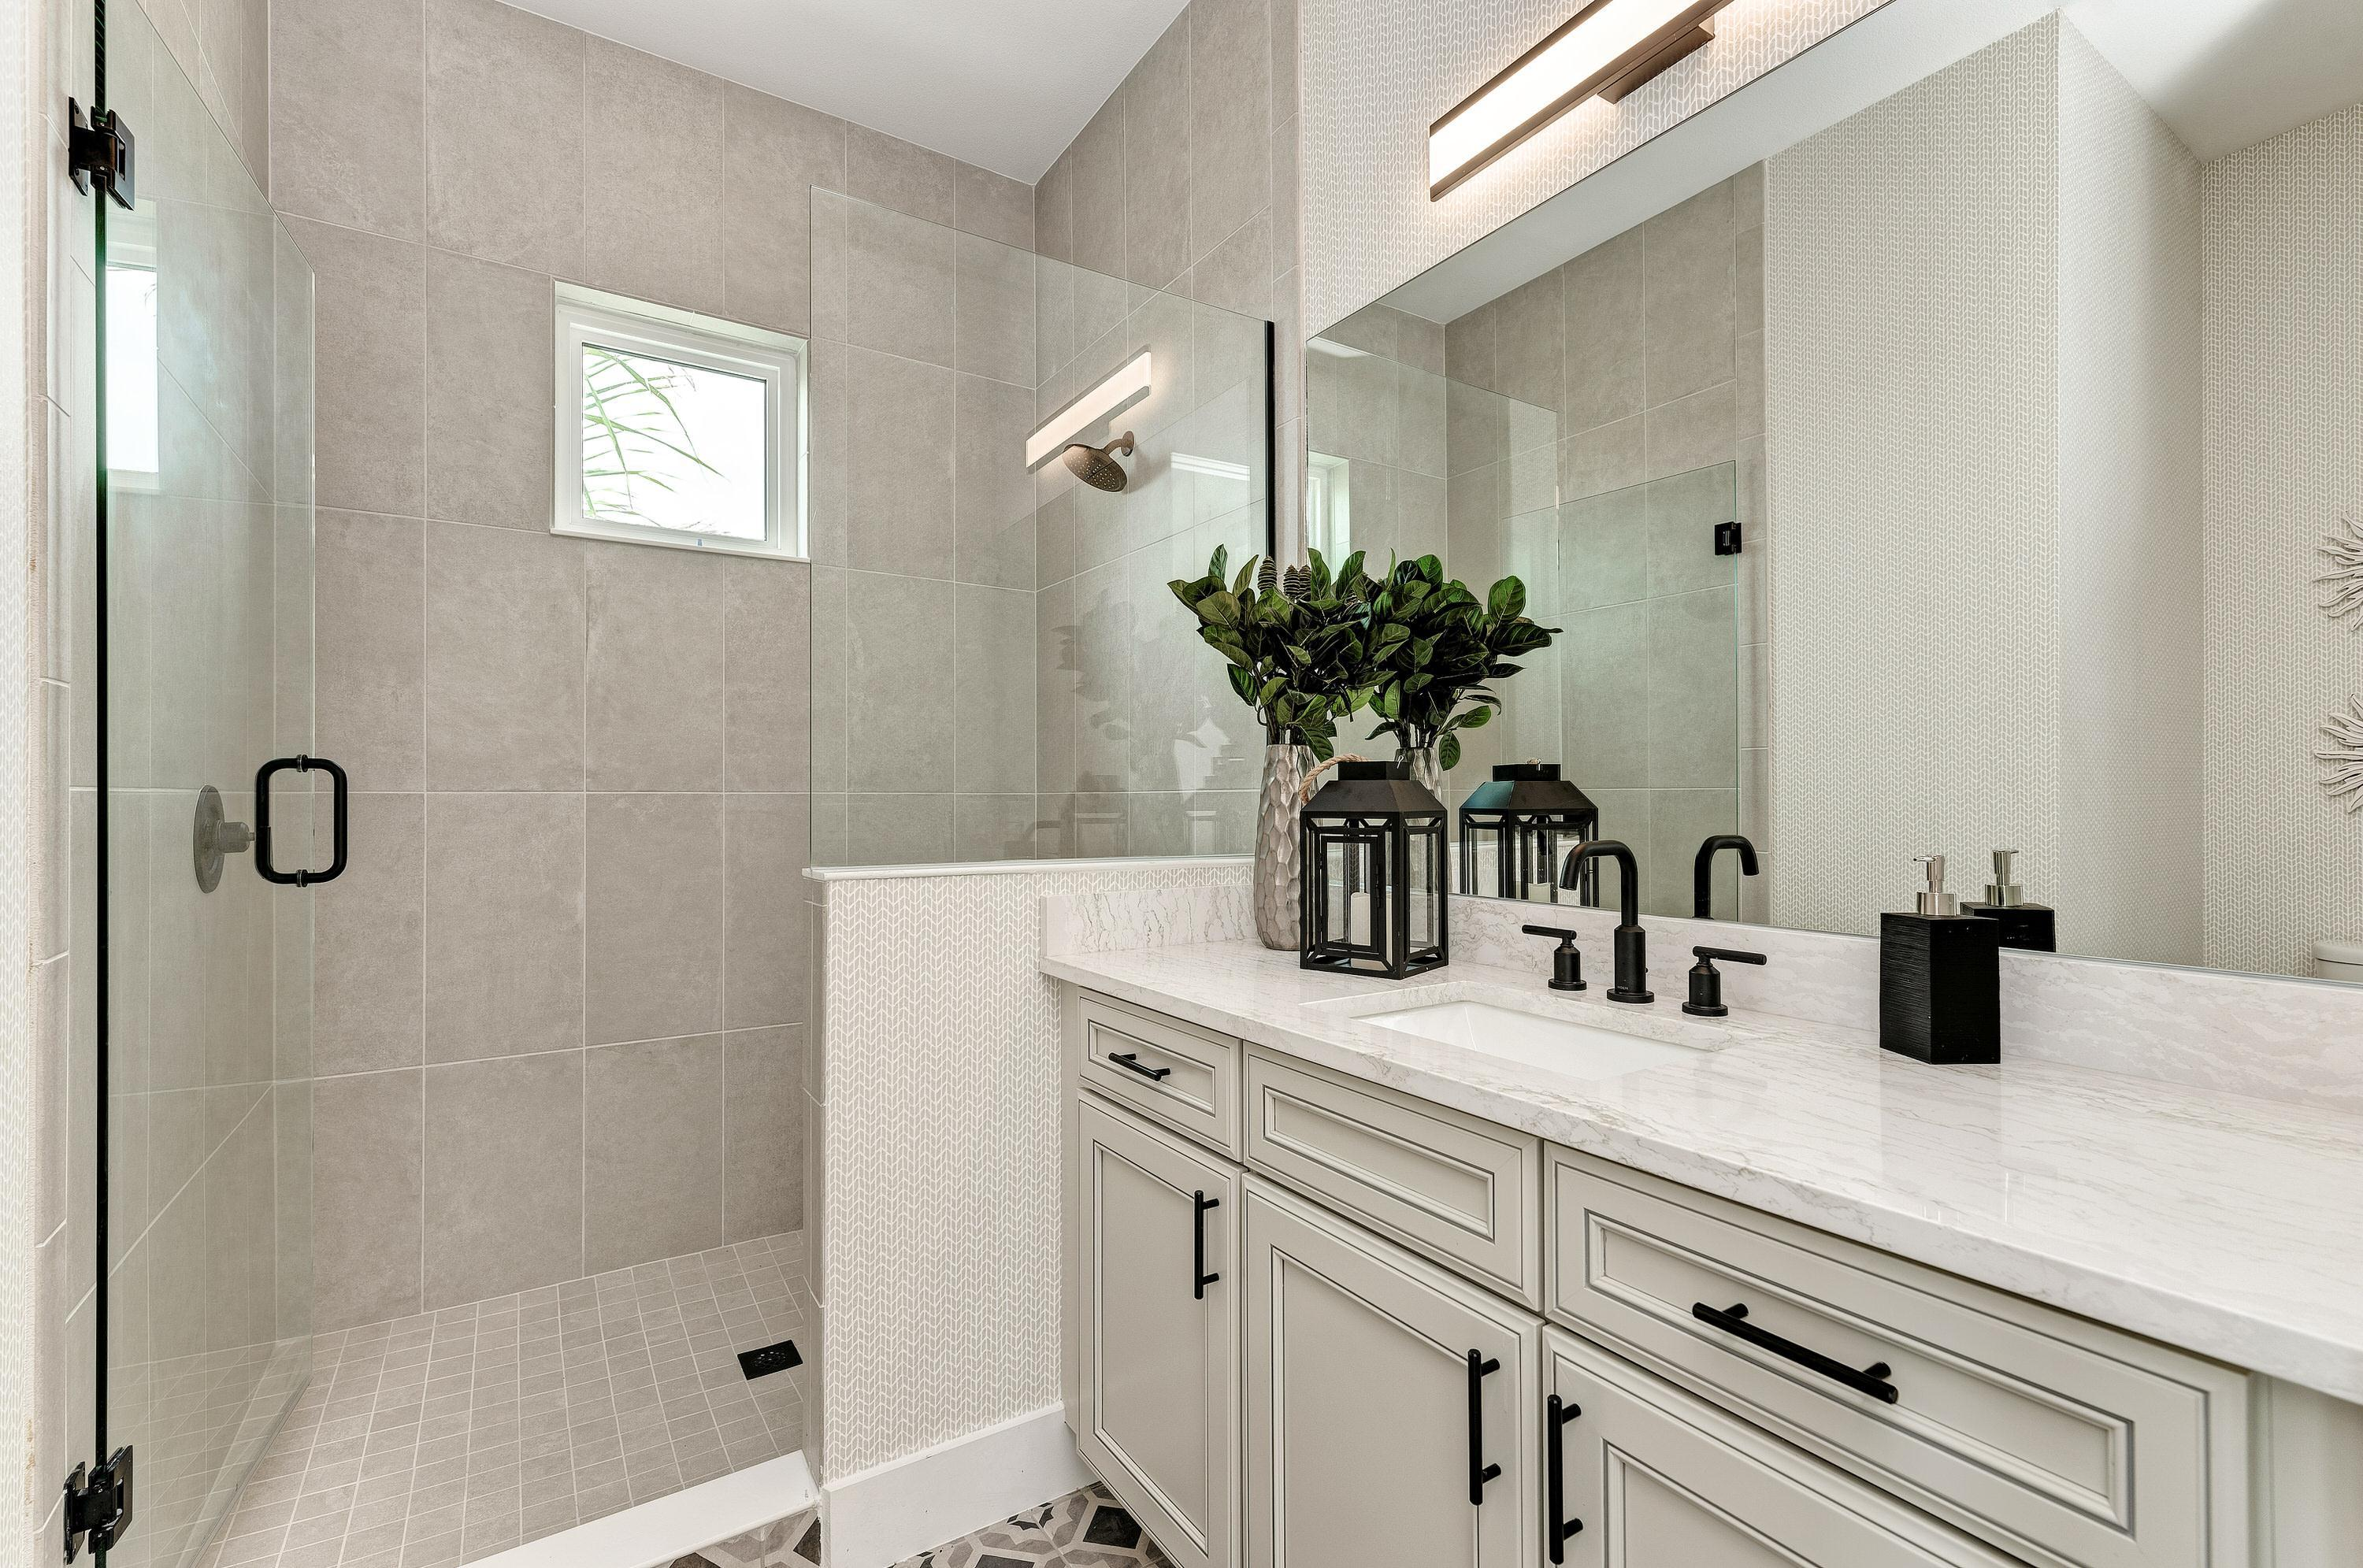 Bathroom featured in the Salt Meadow By Medallion Home in Sarasota-Bradenton, FL